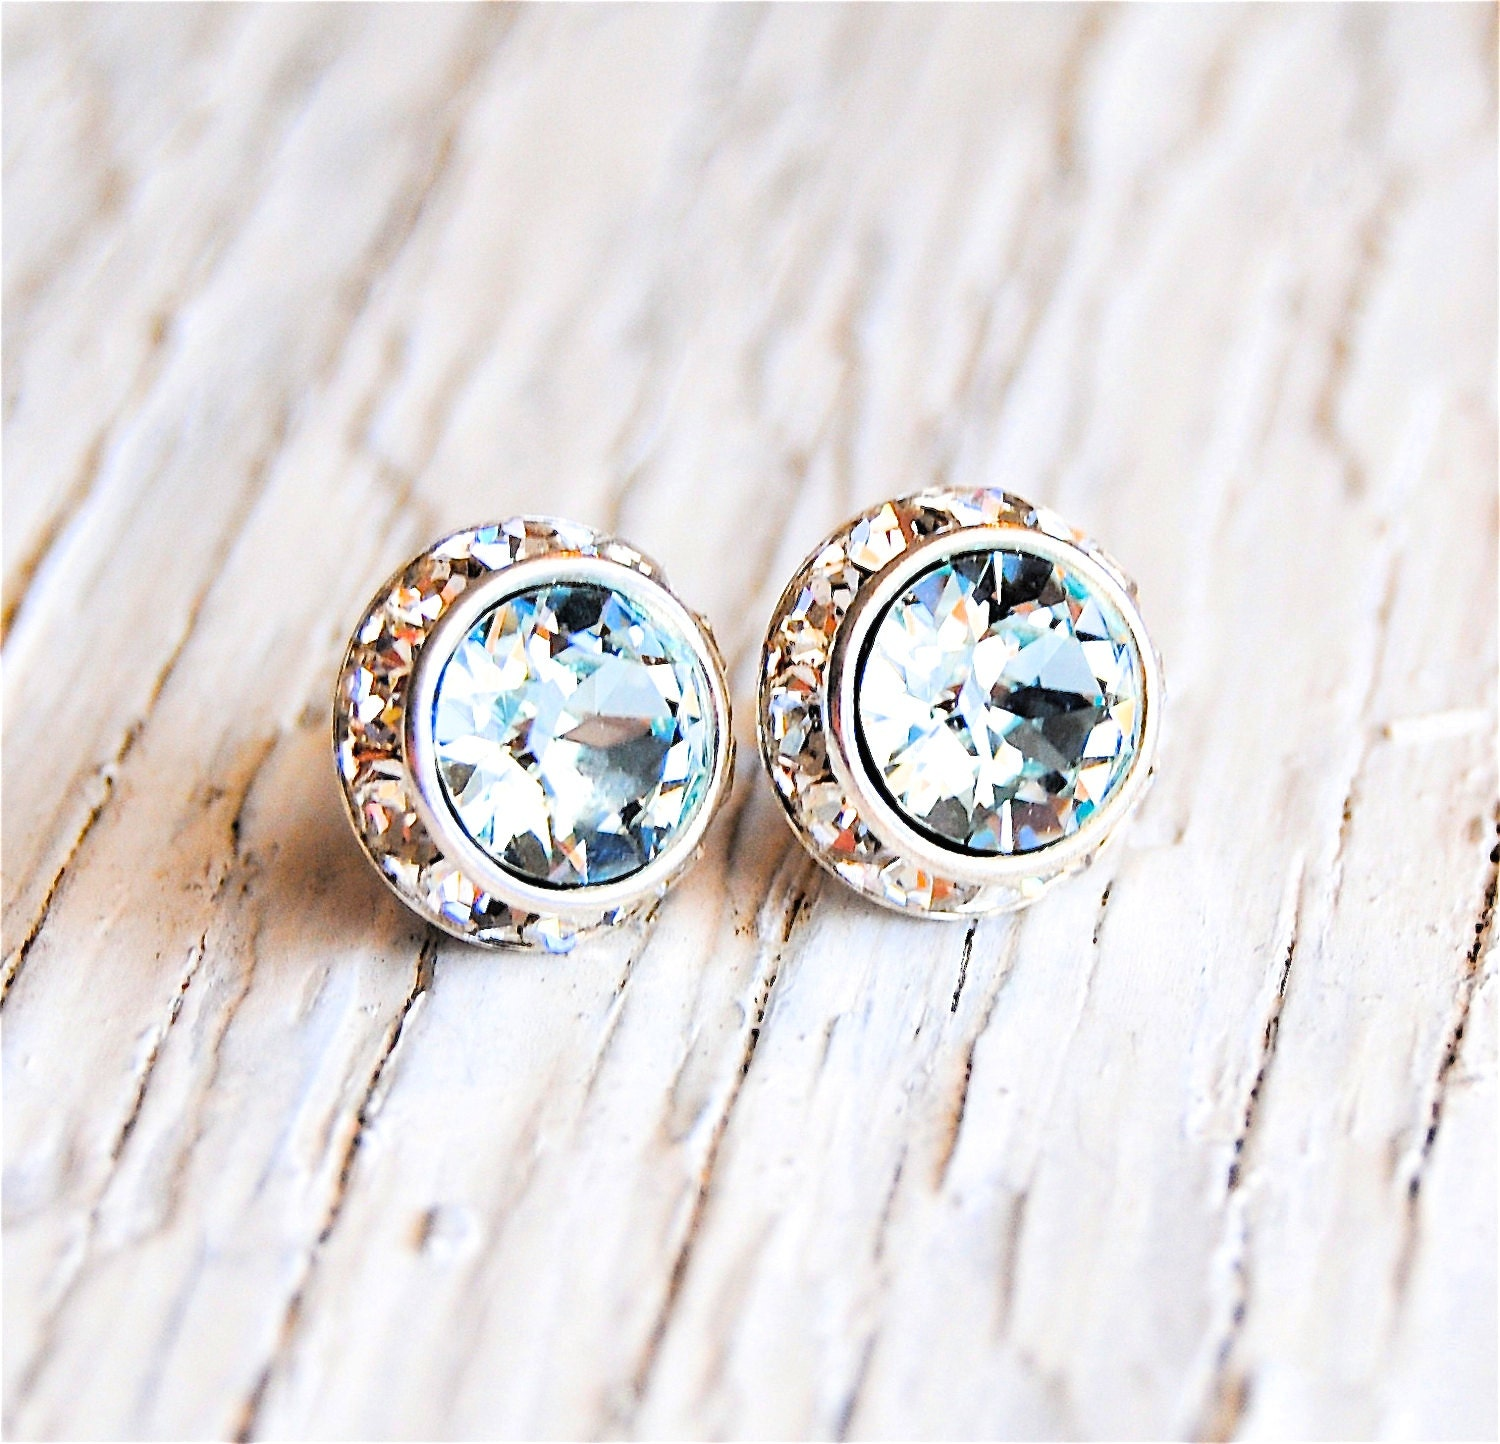 earrings com white and wedding engagement shipping solid buy wholesale free get on genuine aliexpress aquamarine w fine gold helon diamonds round stud